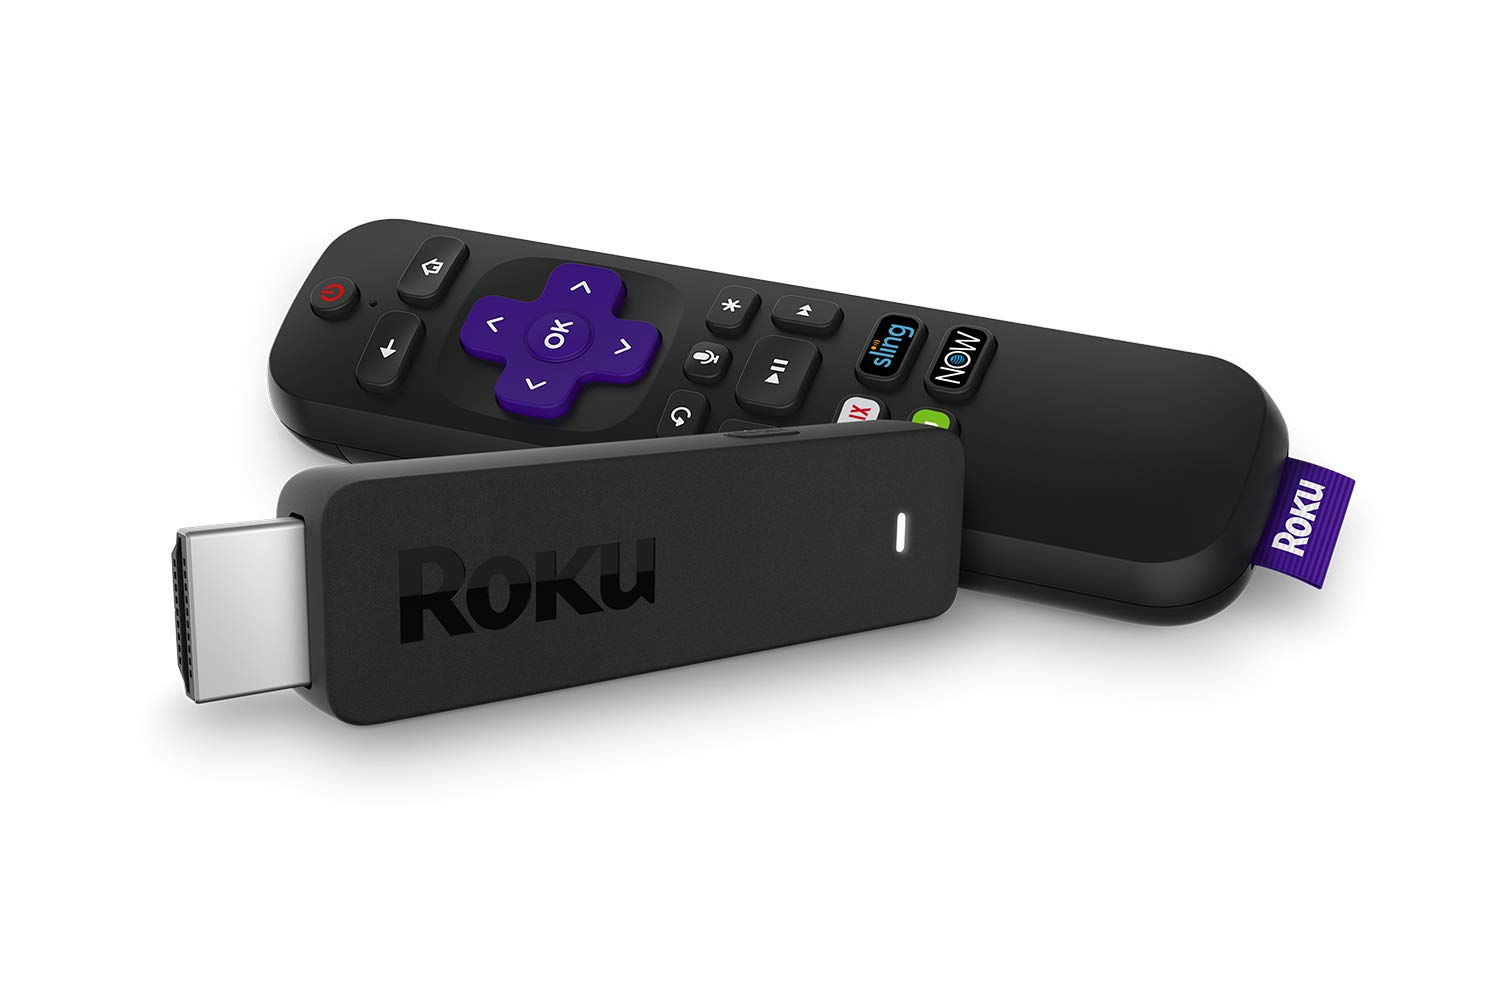 Roku Streaming Stick | Portable, Power-Packed Player with Voice Remote with TV Power and Volume (2017) 2